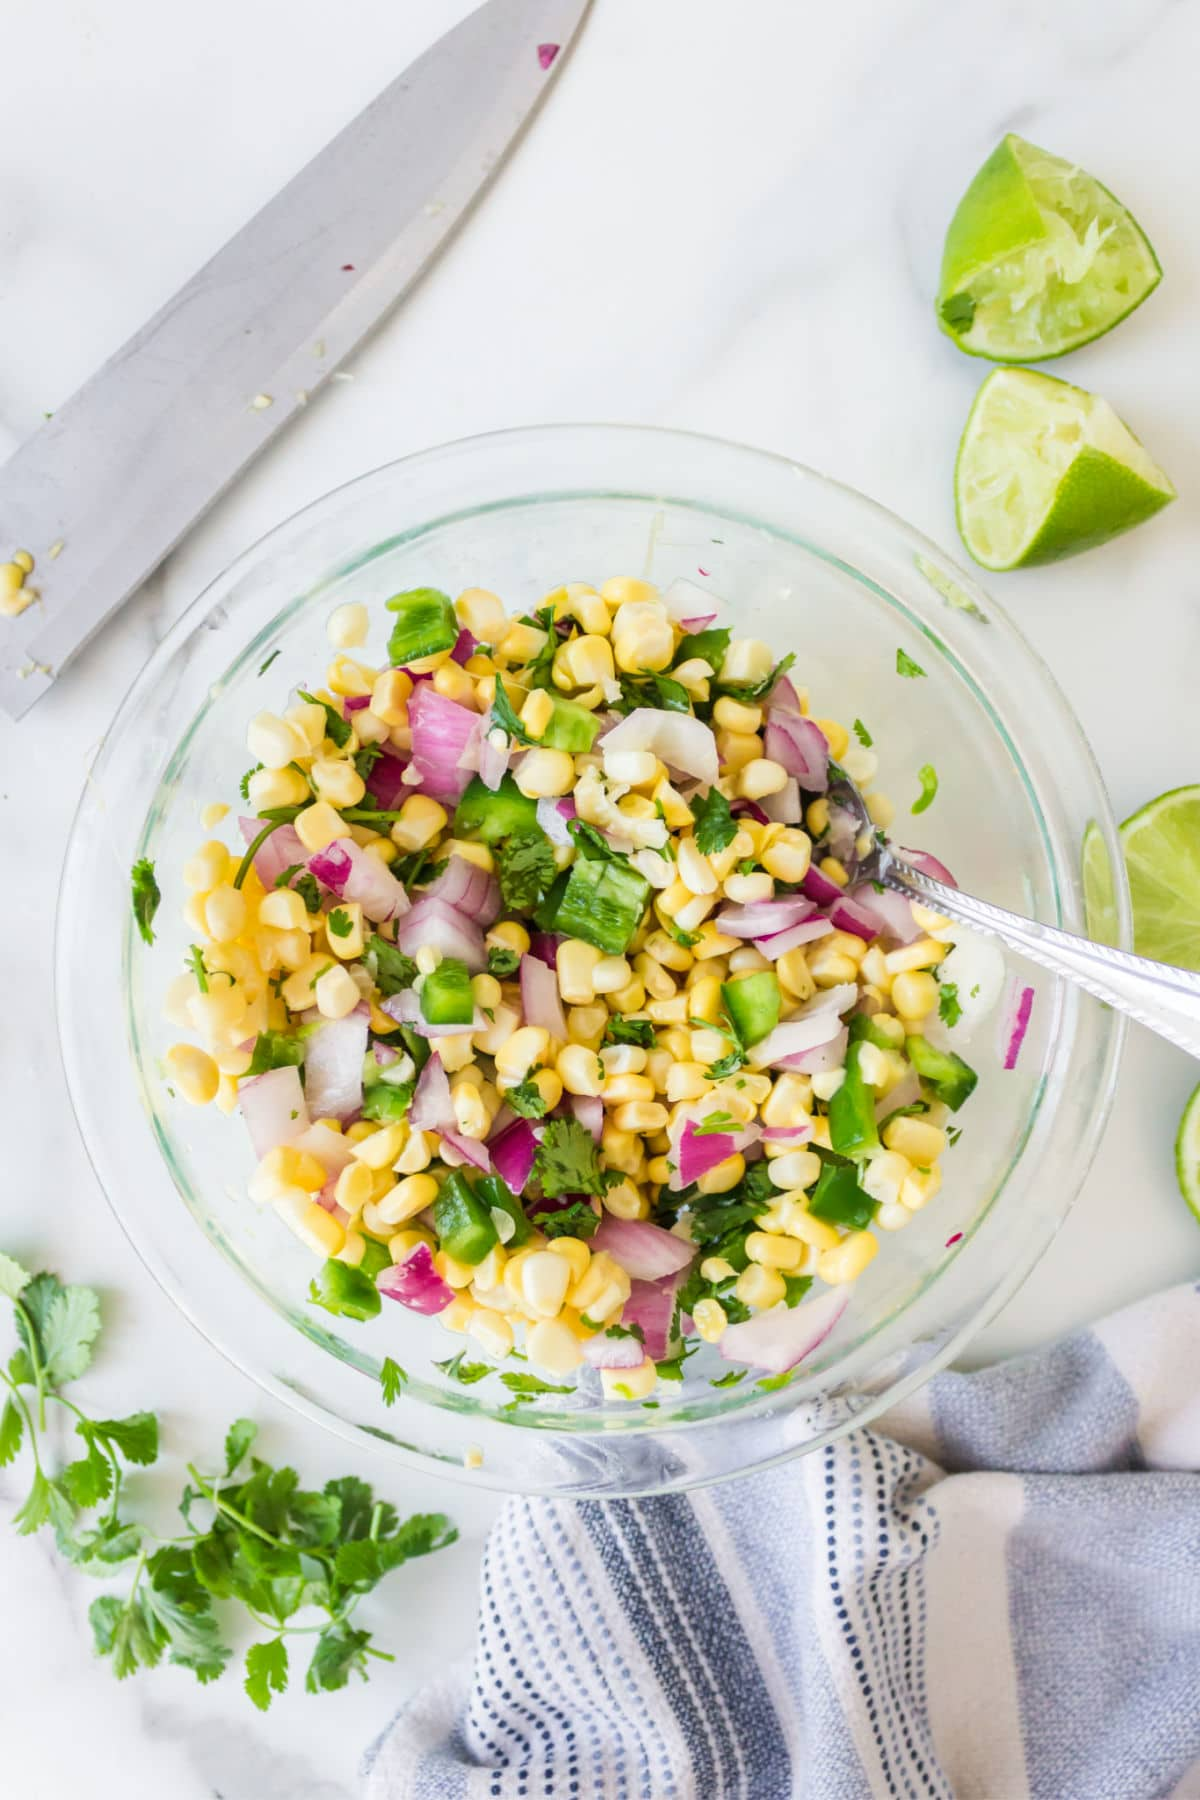 Corn salsa in a glass dish with fresh limes and fresh cilantro around it.